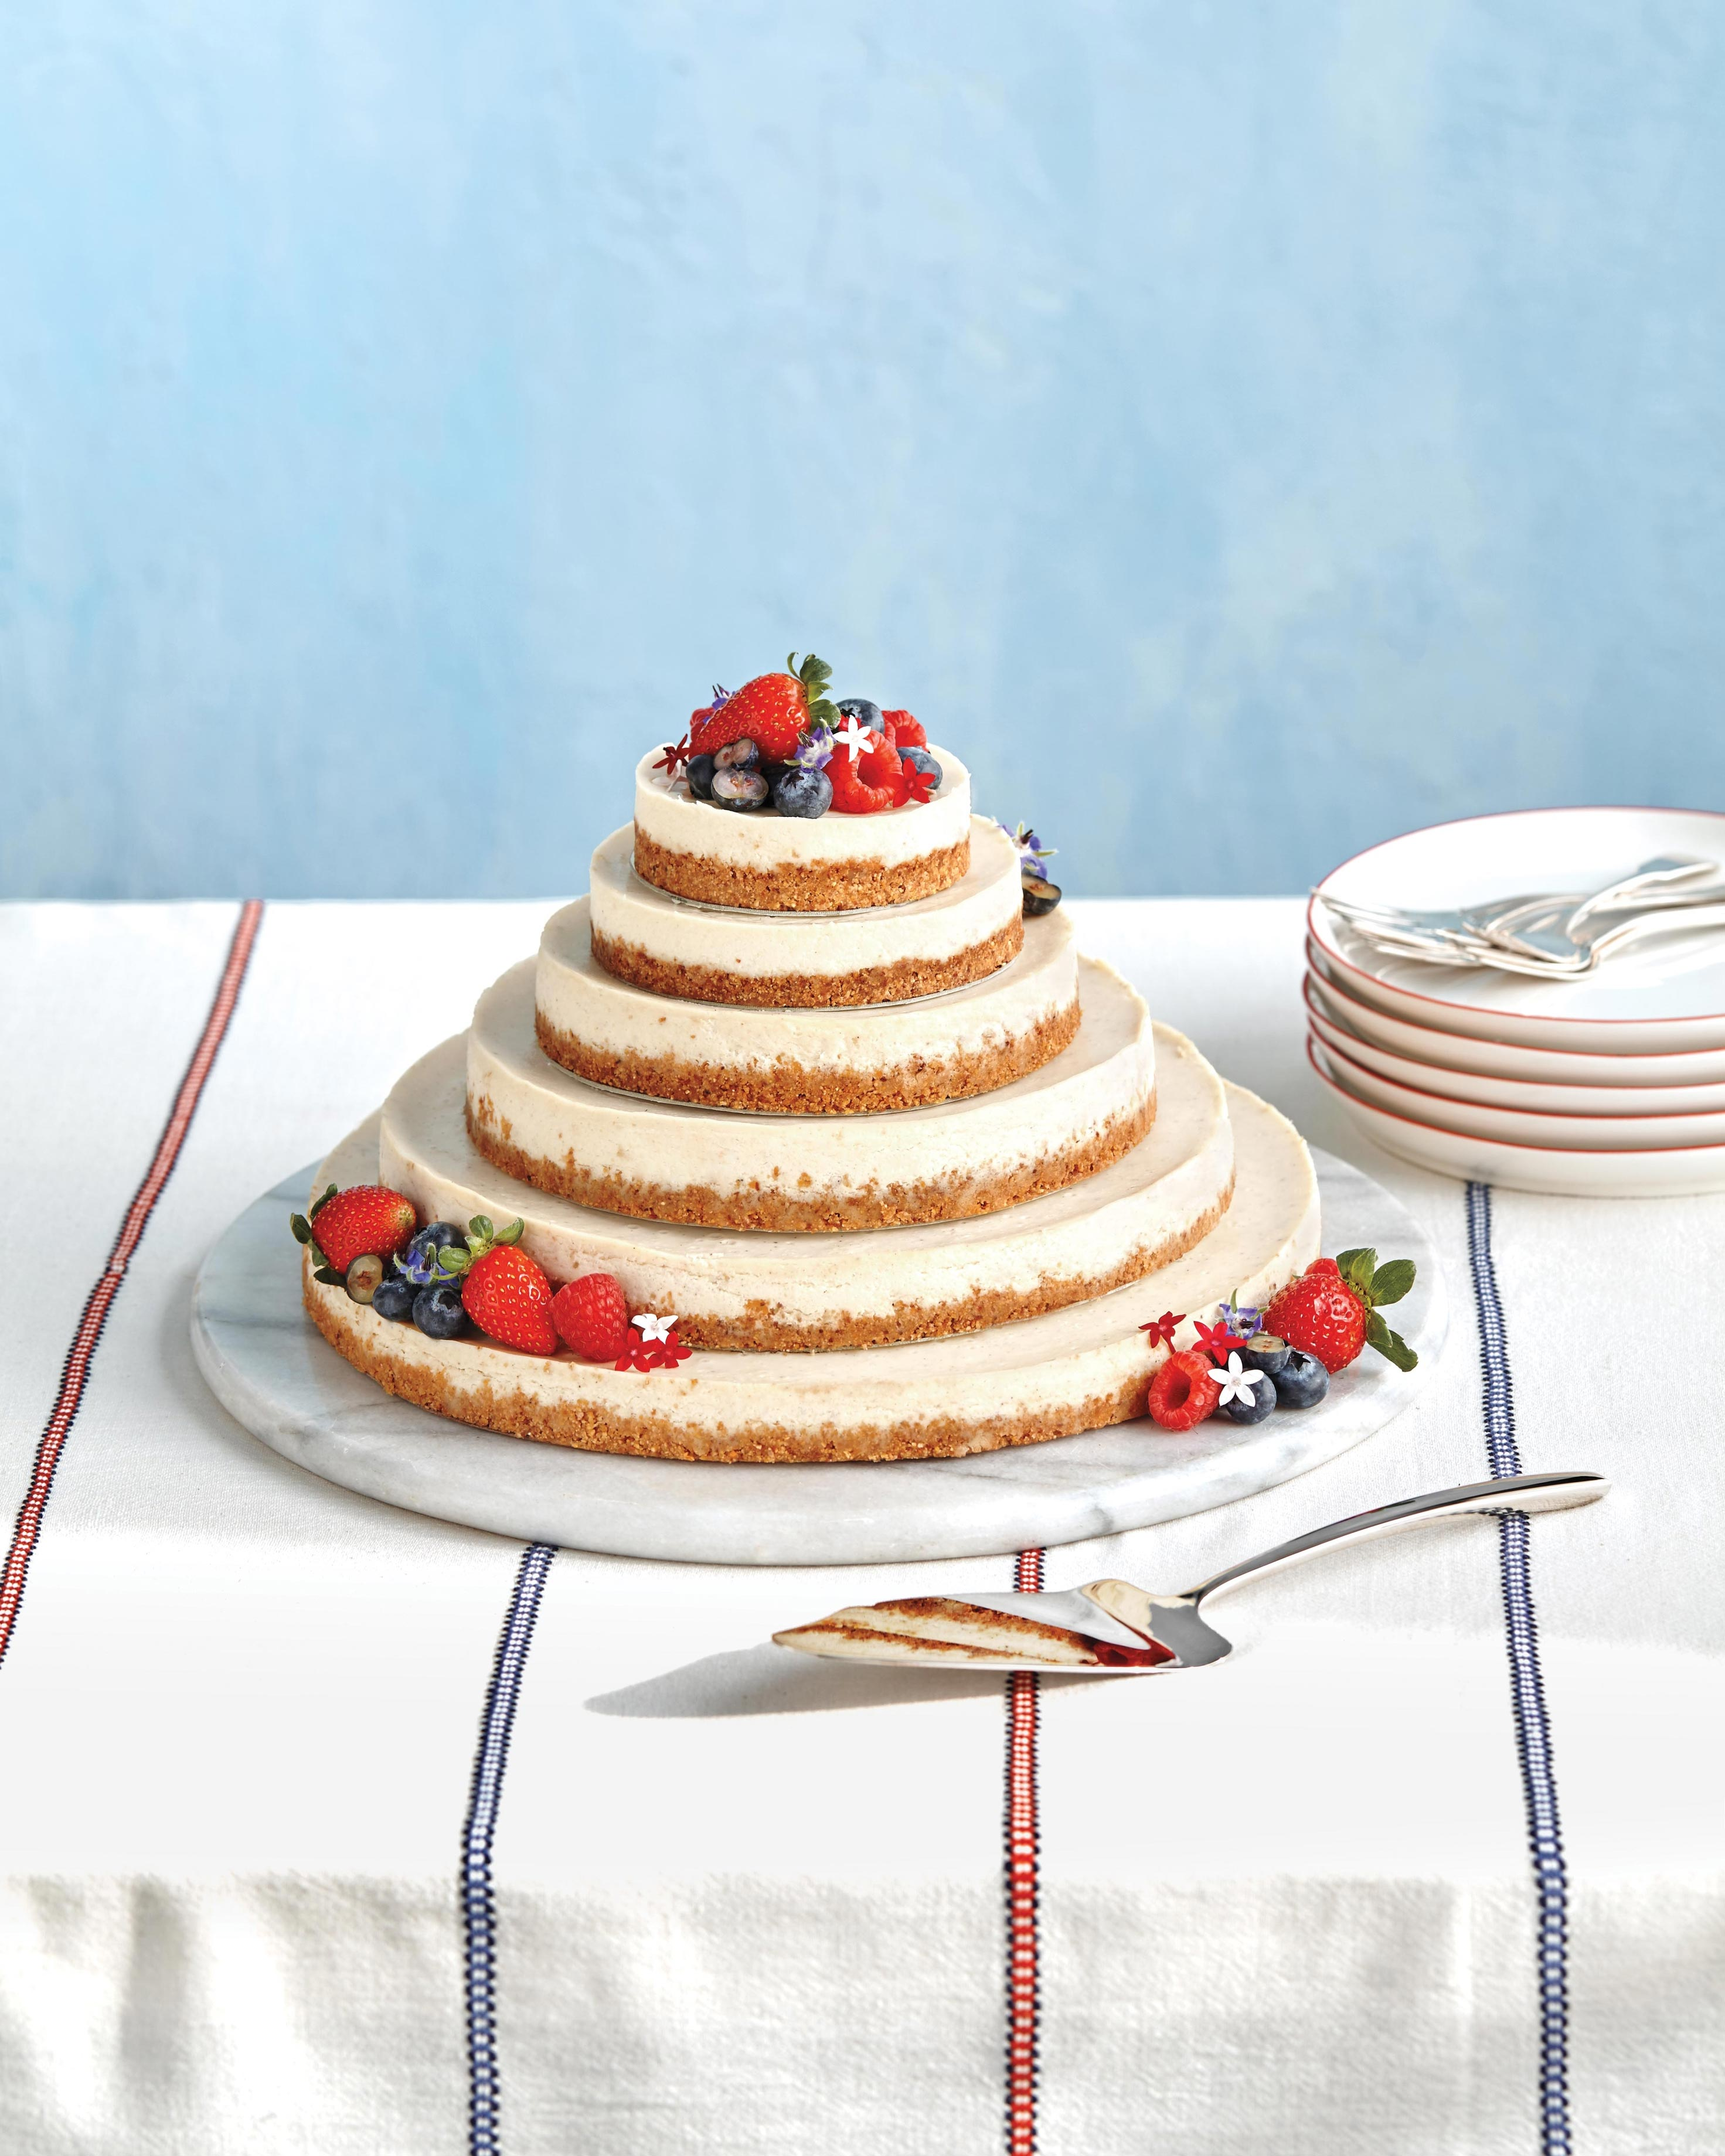 blue-red-wedding-colors-cheesecake-with-berries-751-d112667_r.jpg